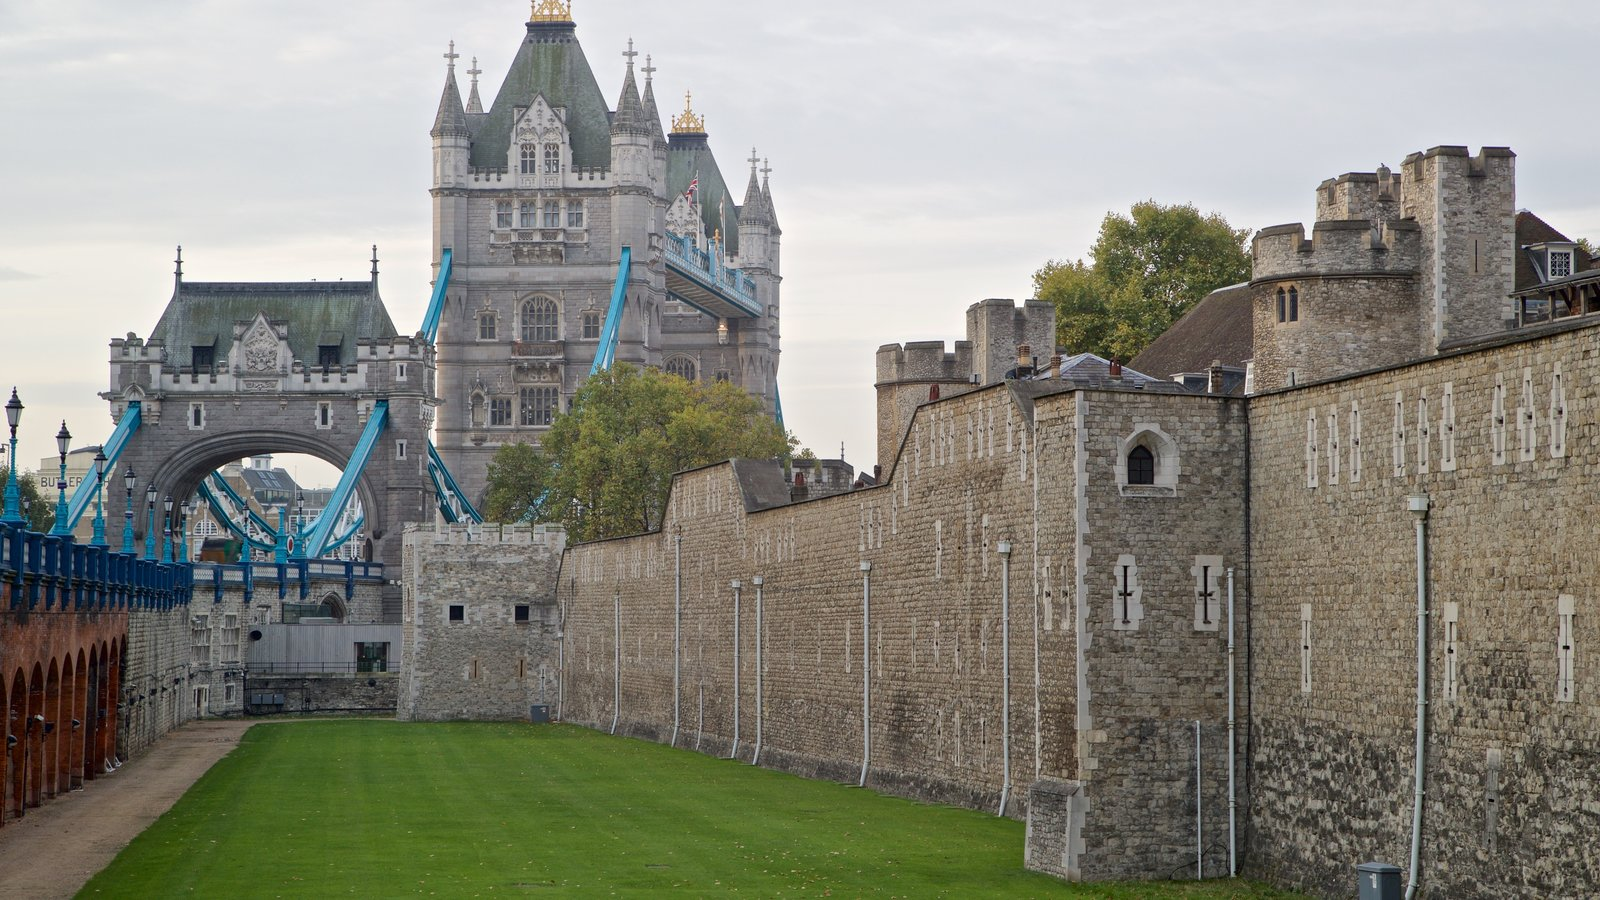 Tower Bridge featuring a castle and heritage elements